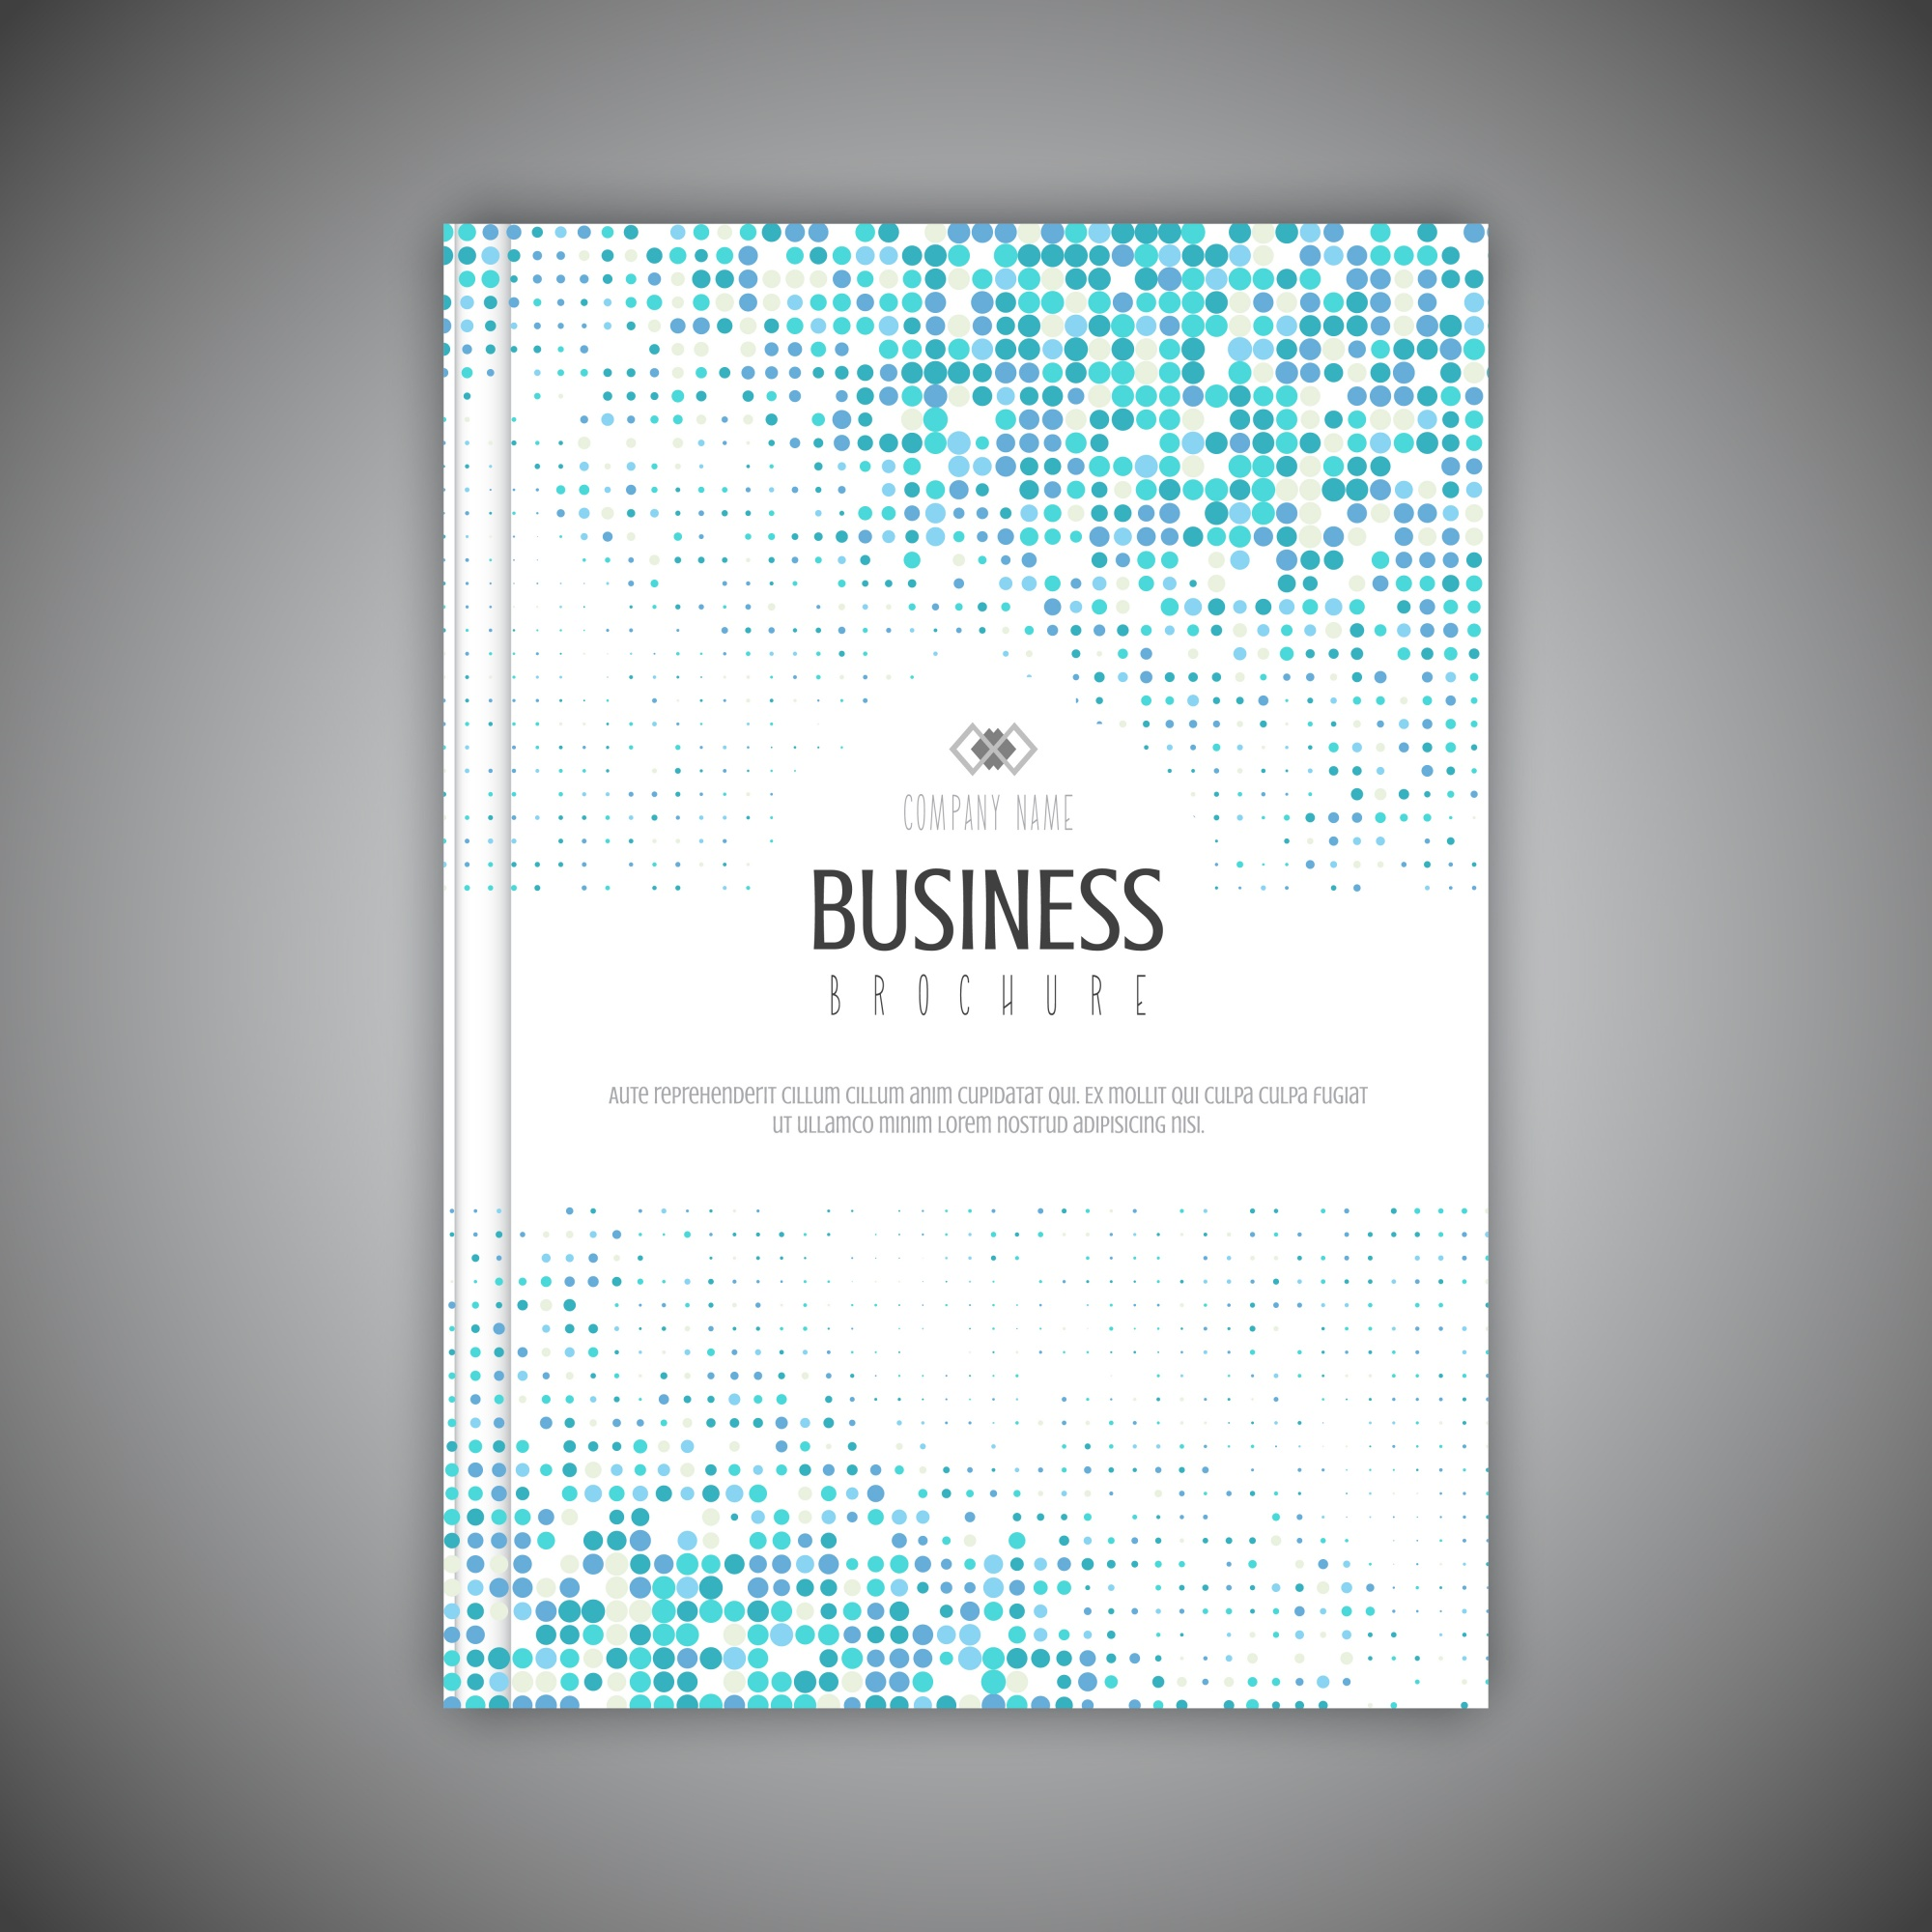 Business brochure template with halftone dots design